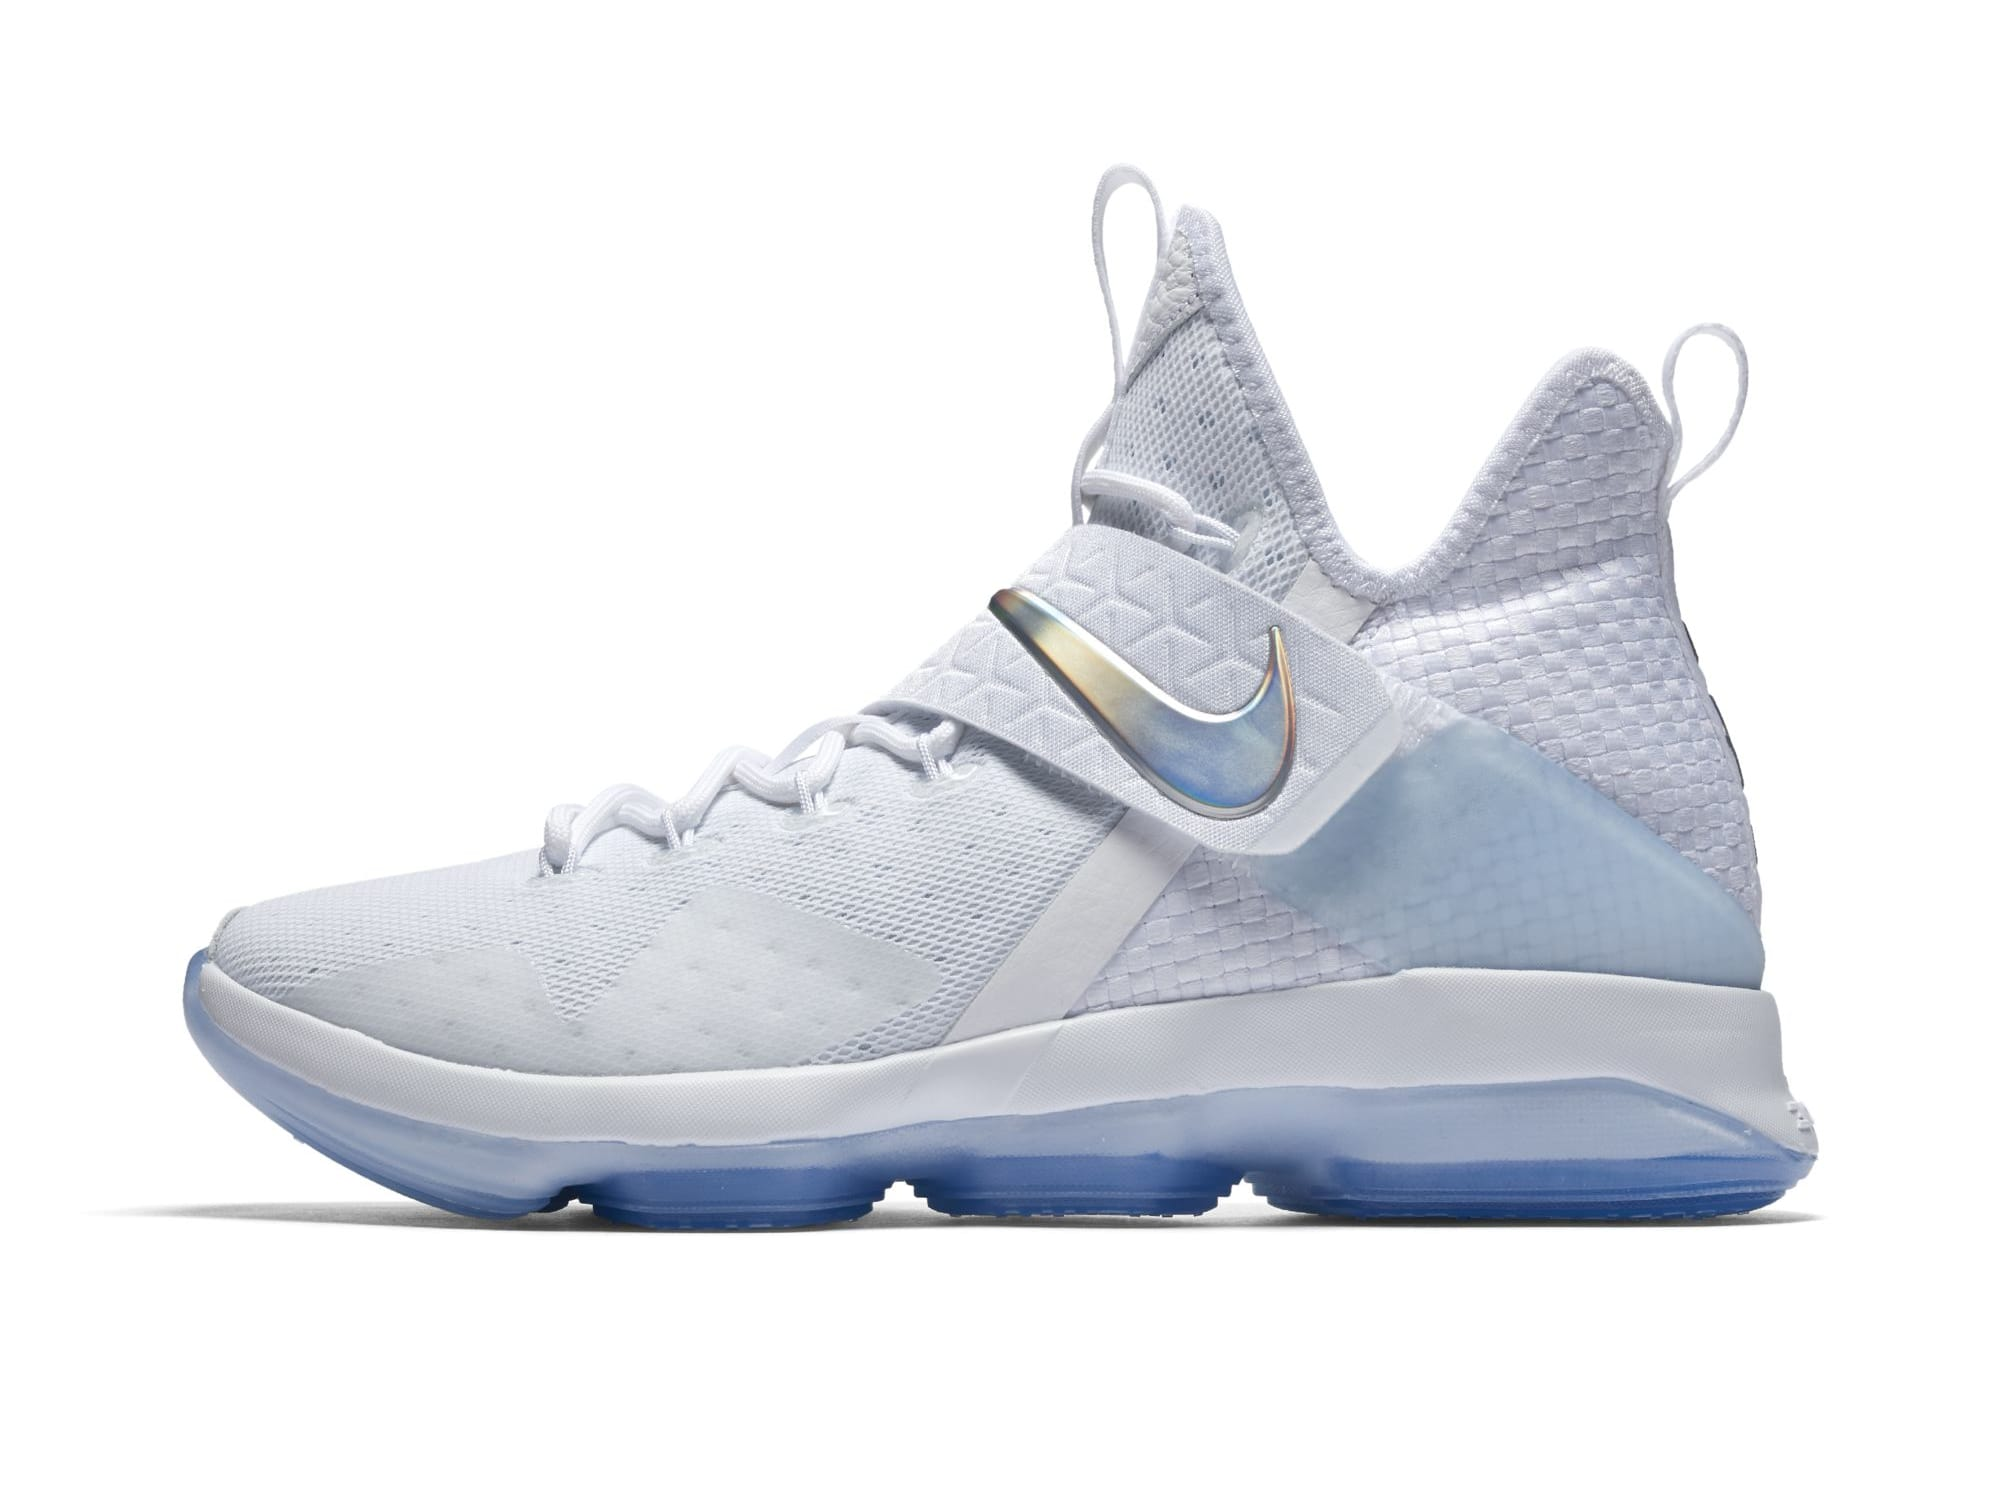 new product 67864 361aa ... spain all white nike lebron 14s. 6170d d0988